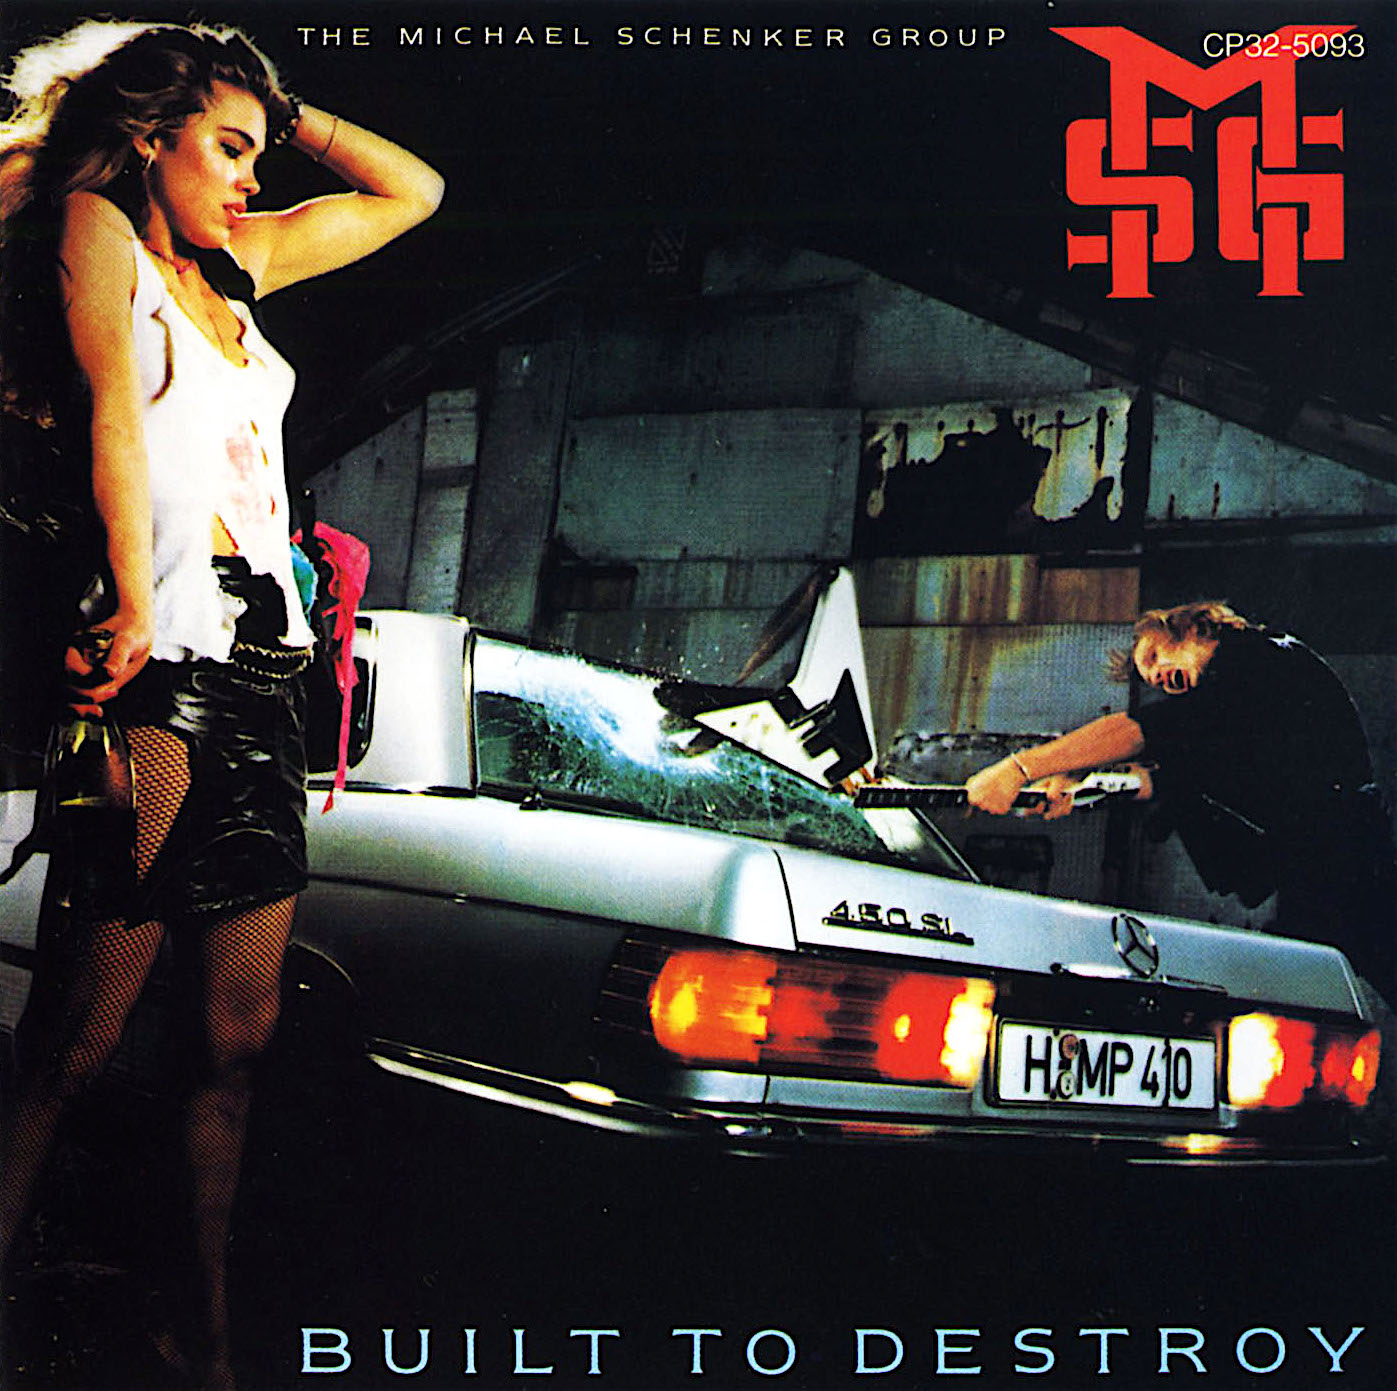 MICHAEL SCHENKER GROUP - Built to Destroy cover